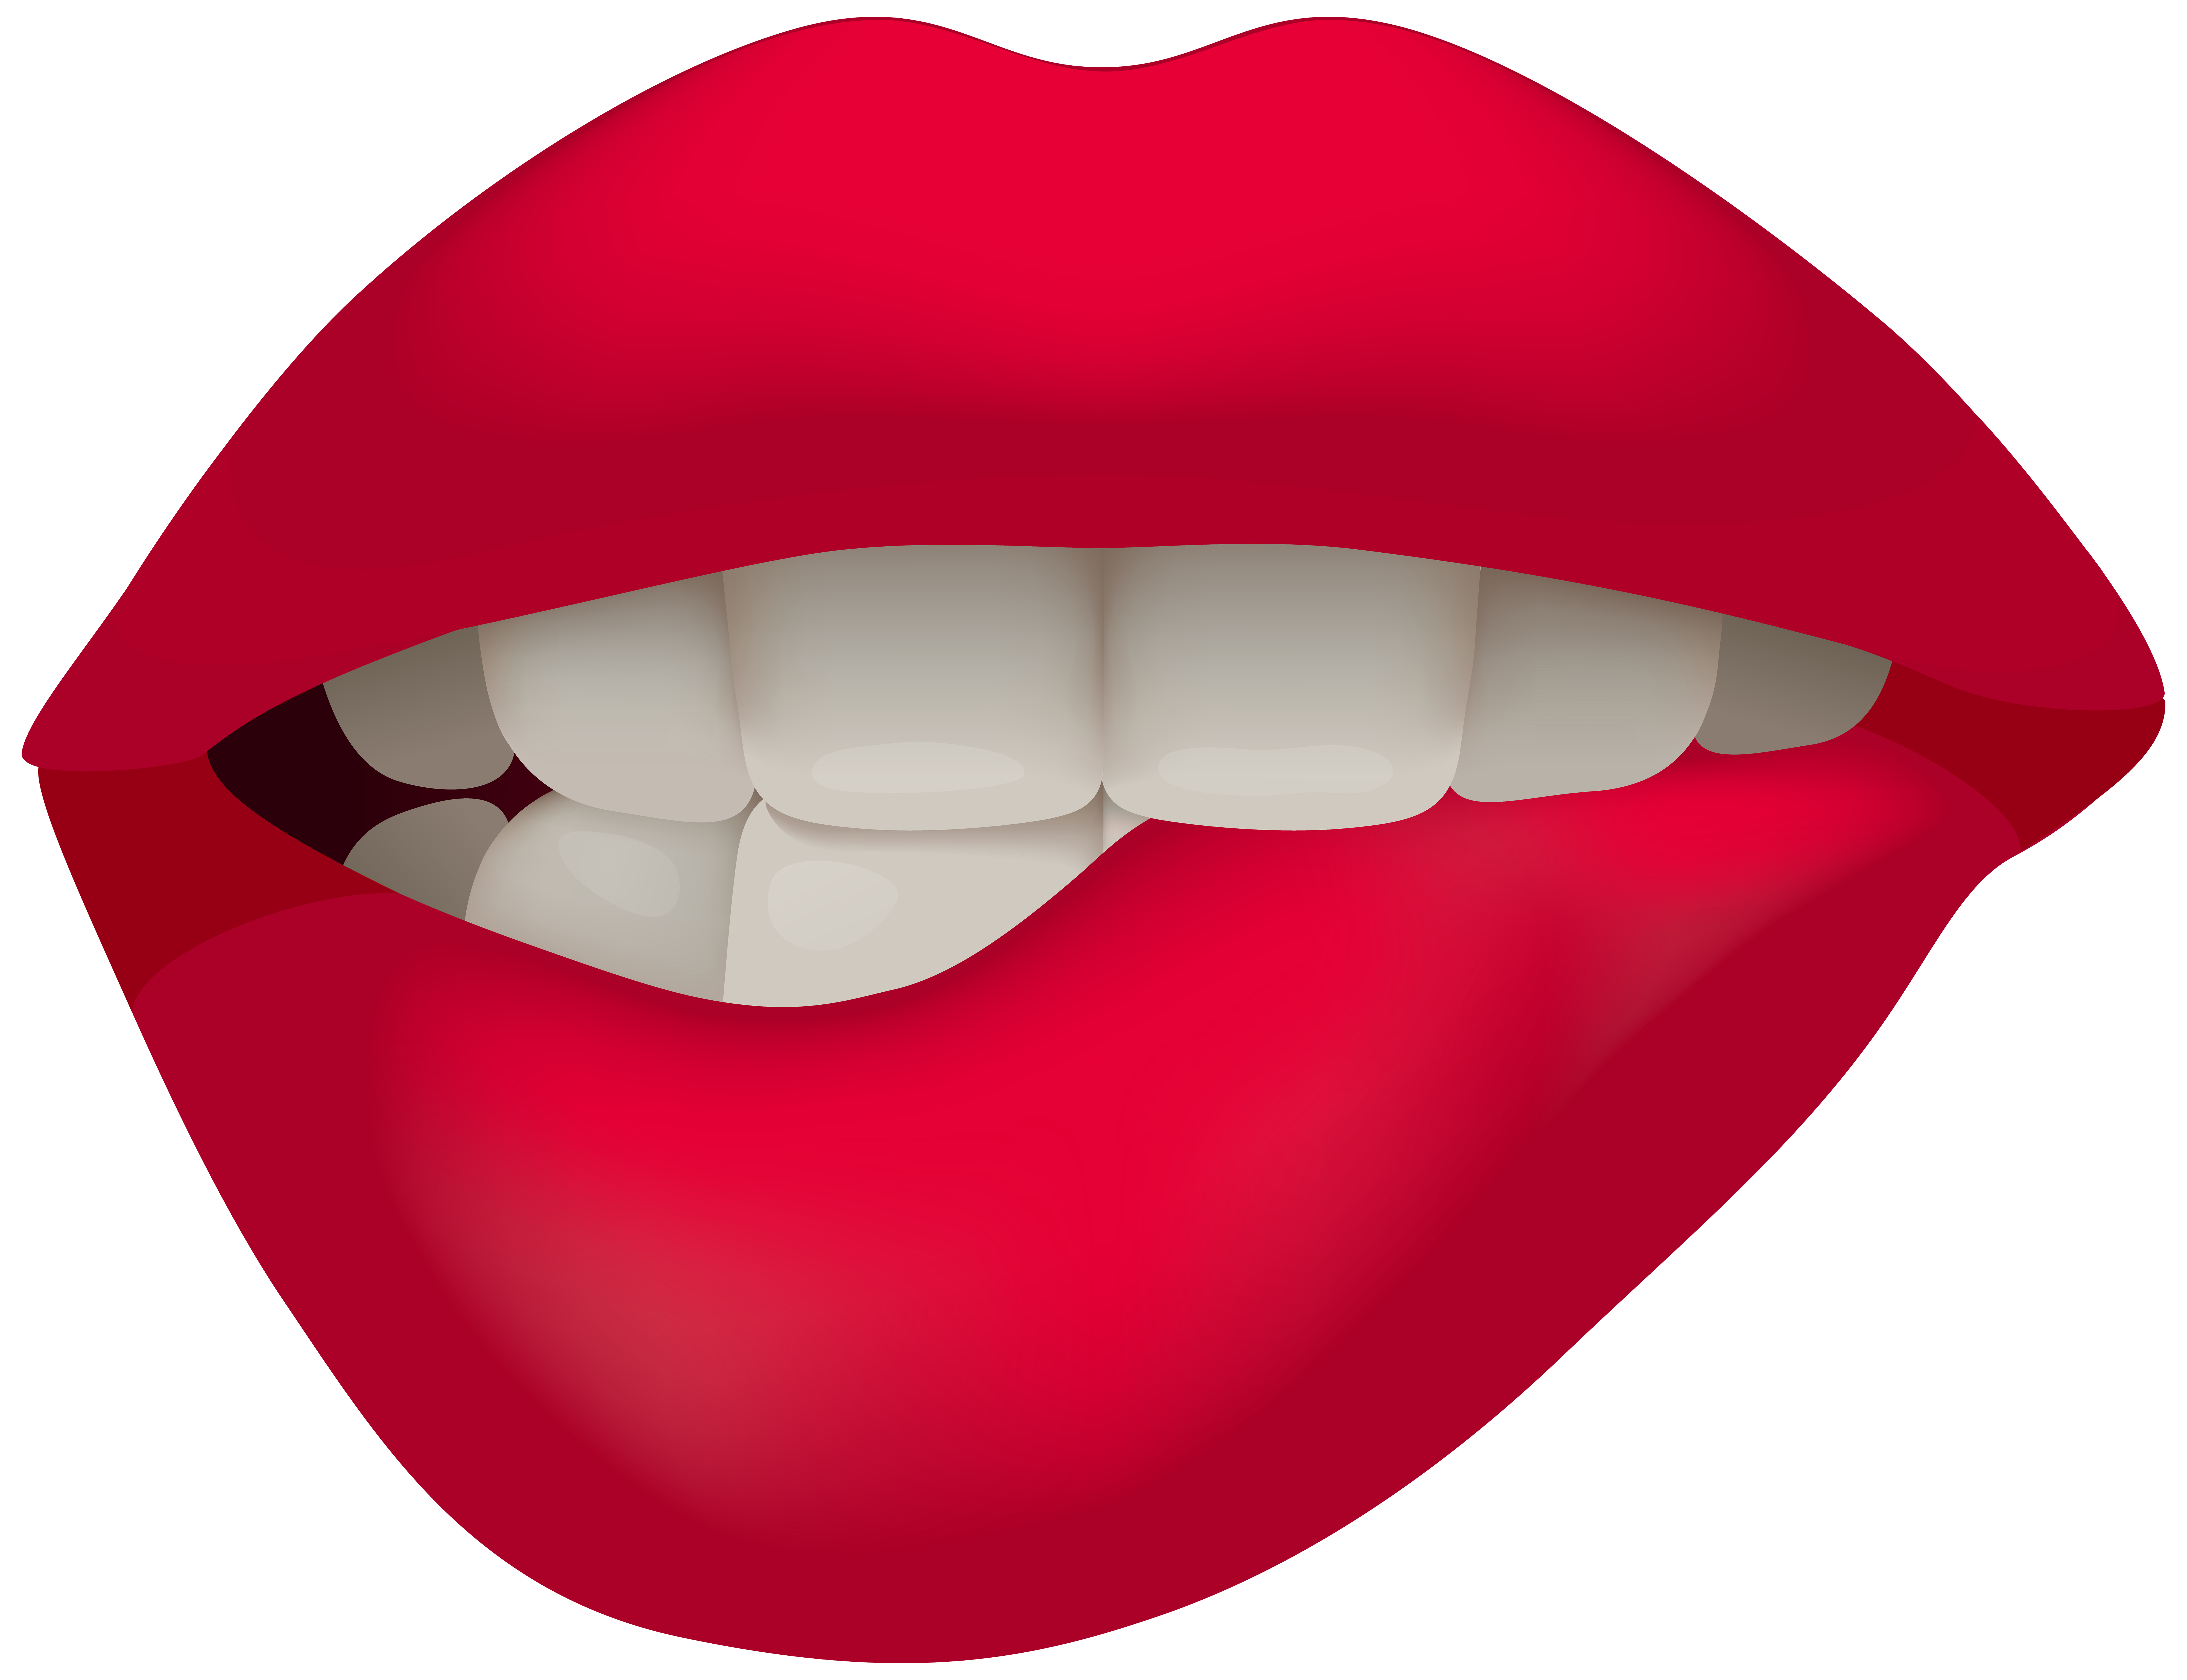 Pursed lips png clip. Lip clipart mouth